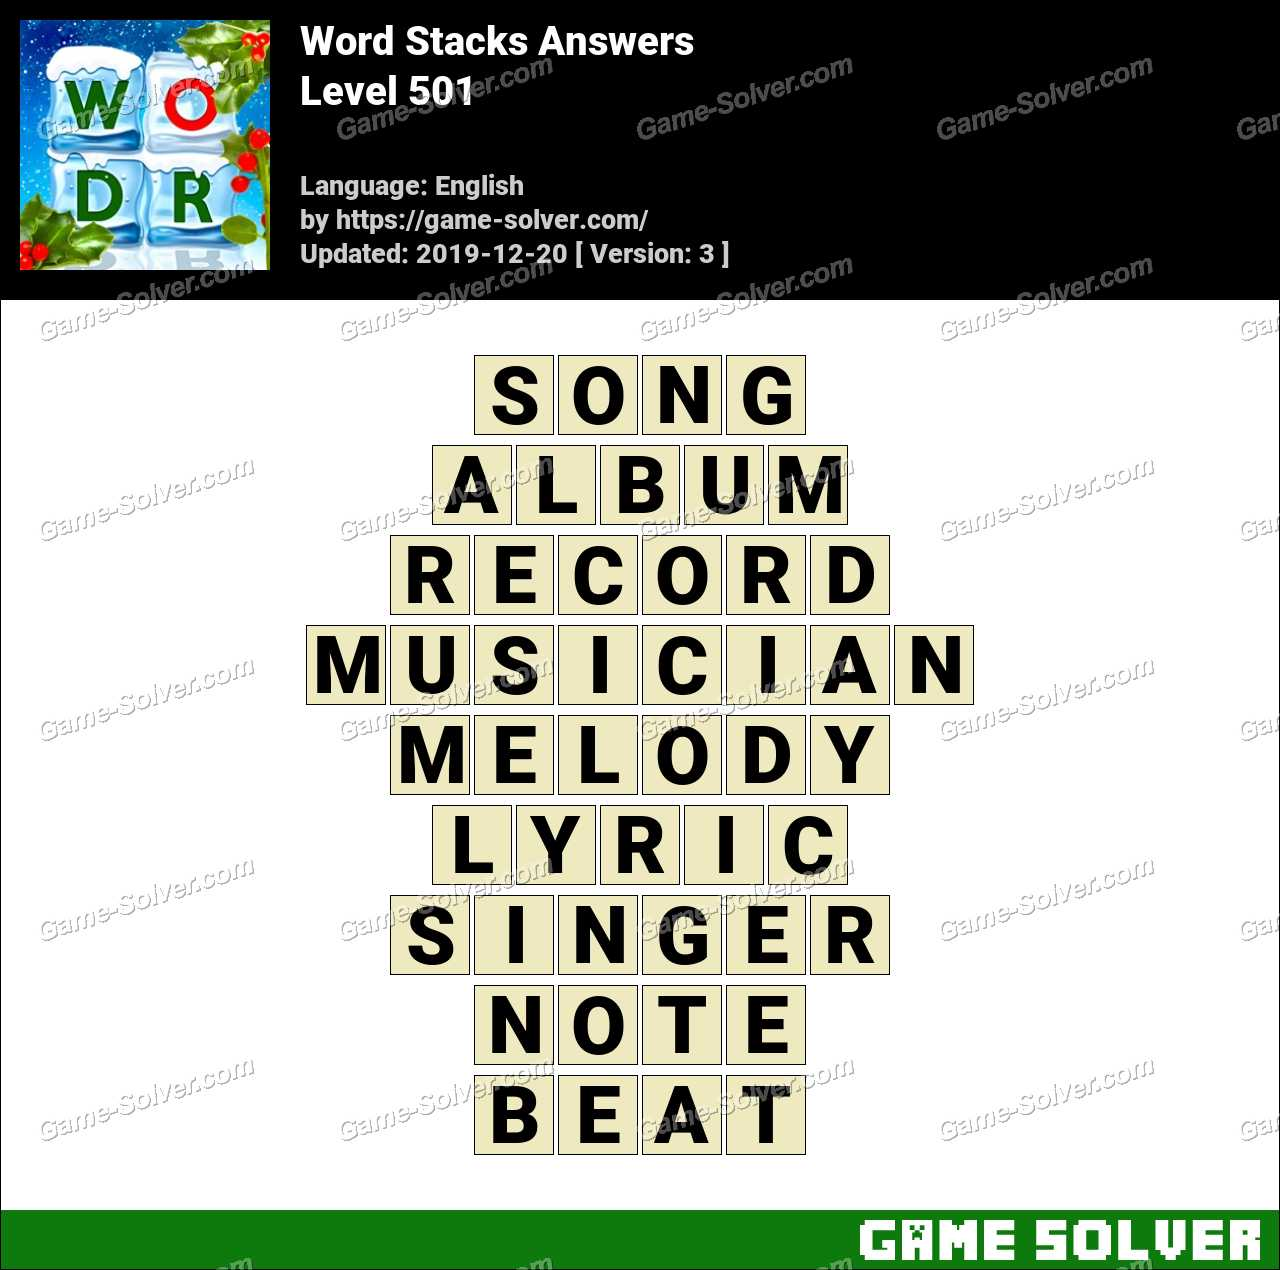 Word Stacks Level 501 Answers